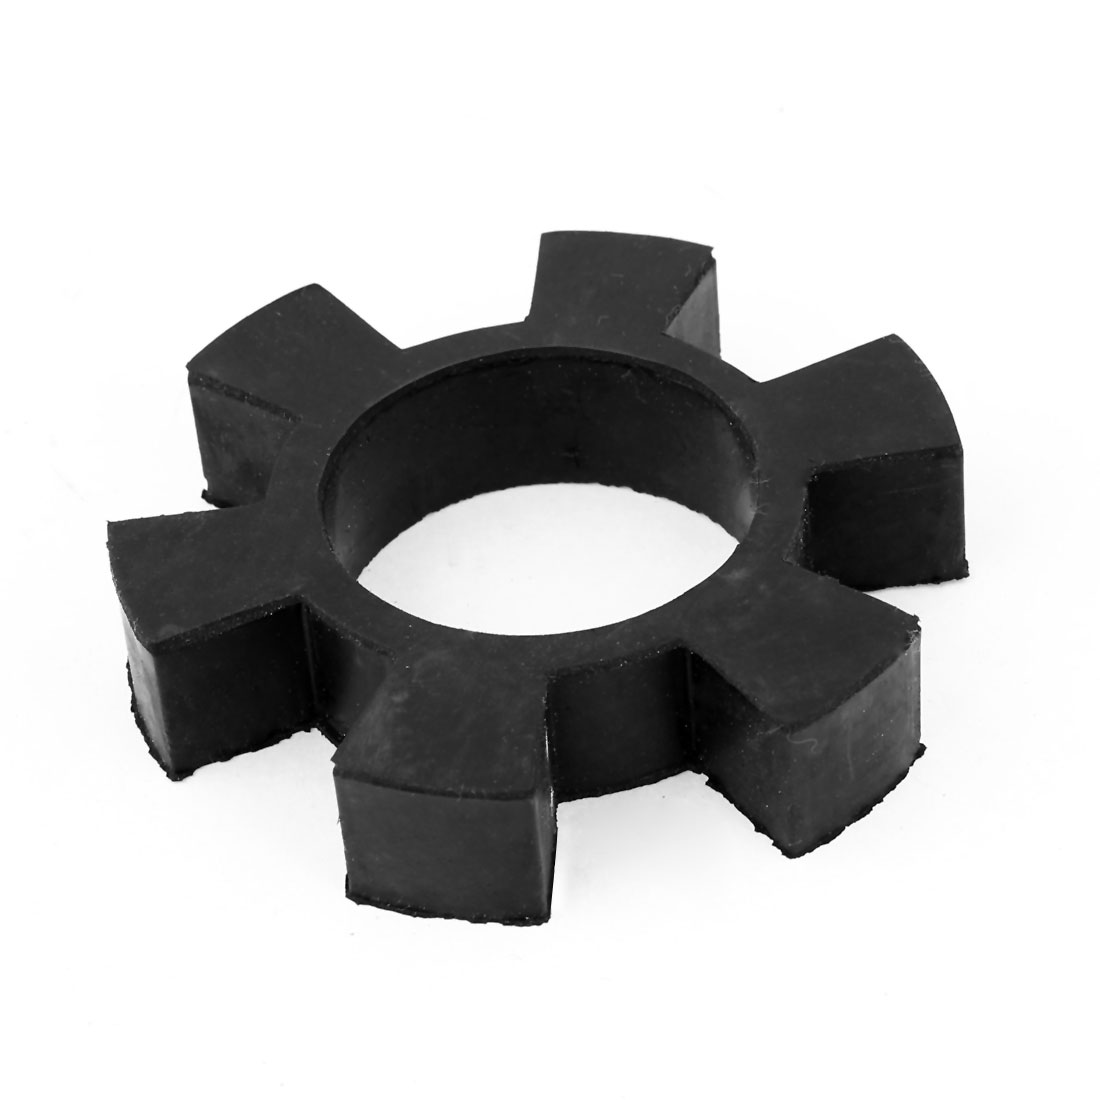 "Black 6 Petal Design 3.1"" OD Rubber Shaft Coupler Damper Shock Absorber"